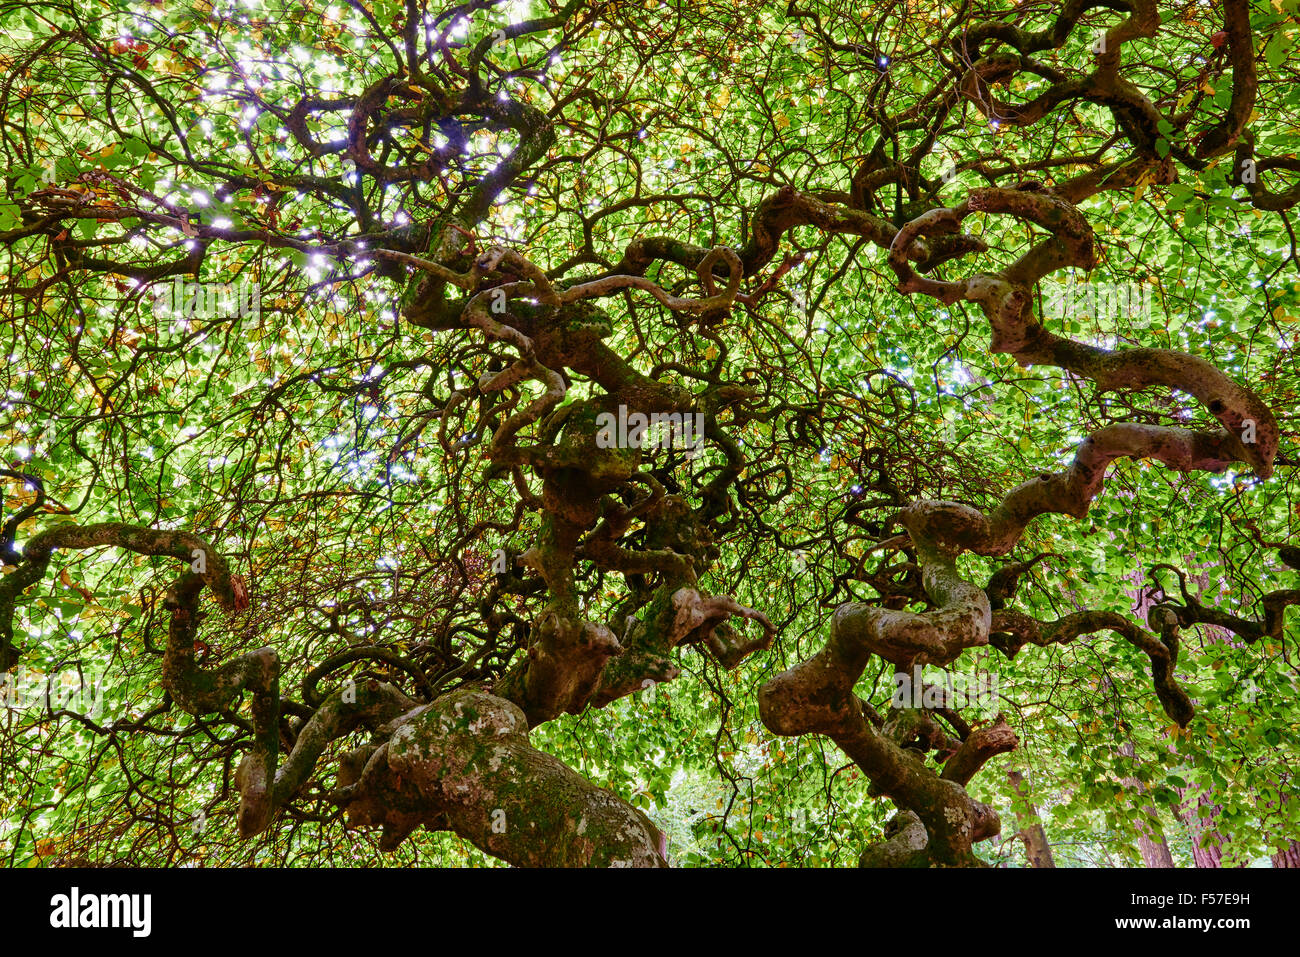 France, Champagne, twisted beech tree at Les Faux de Verzy forest - Stock Image